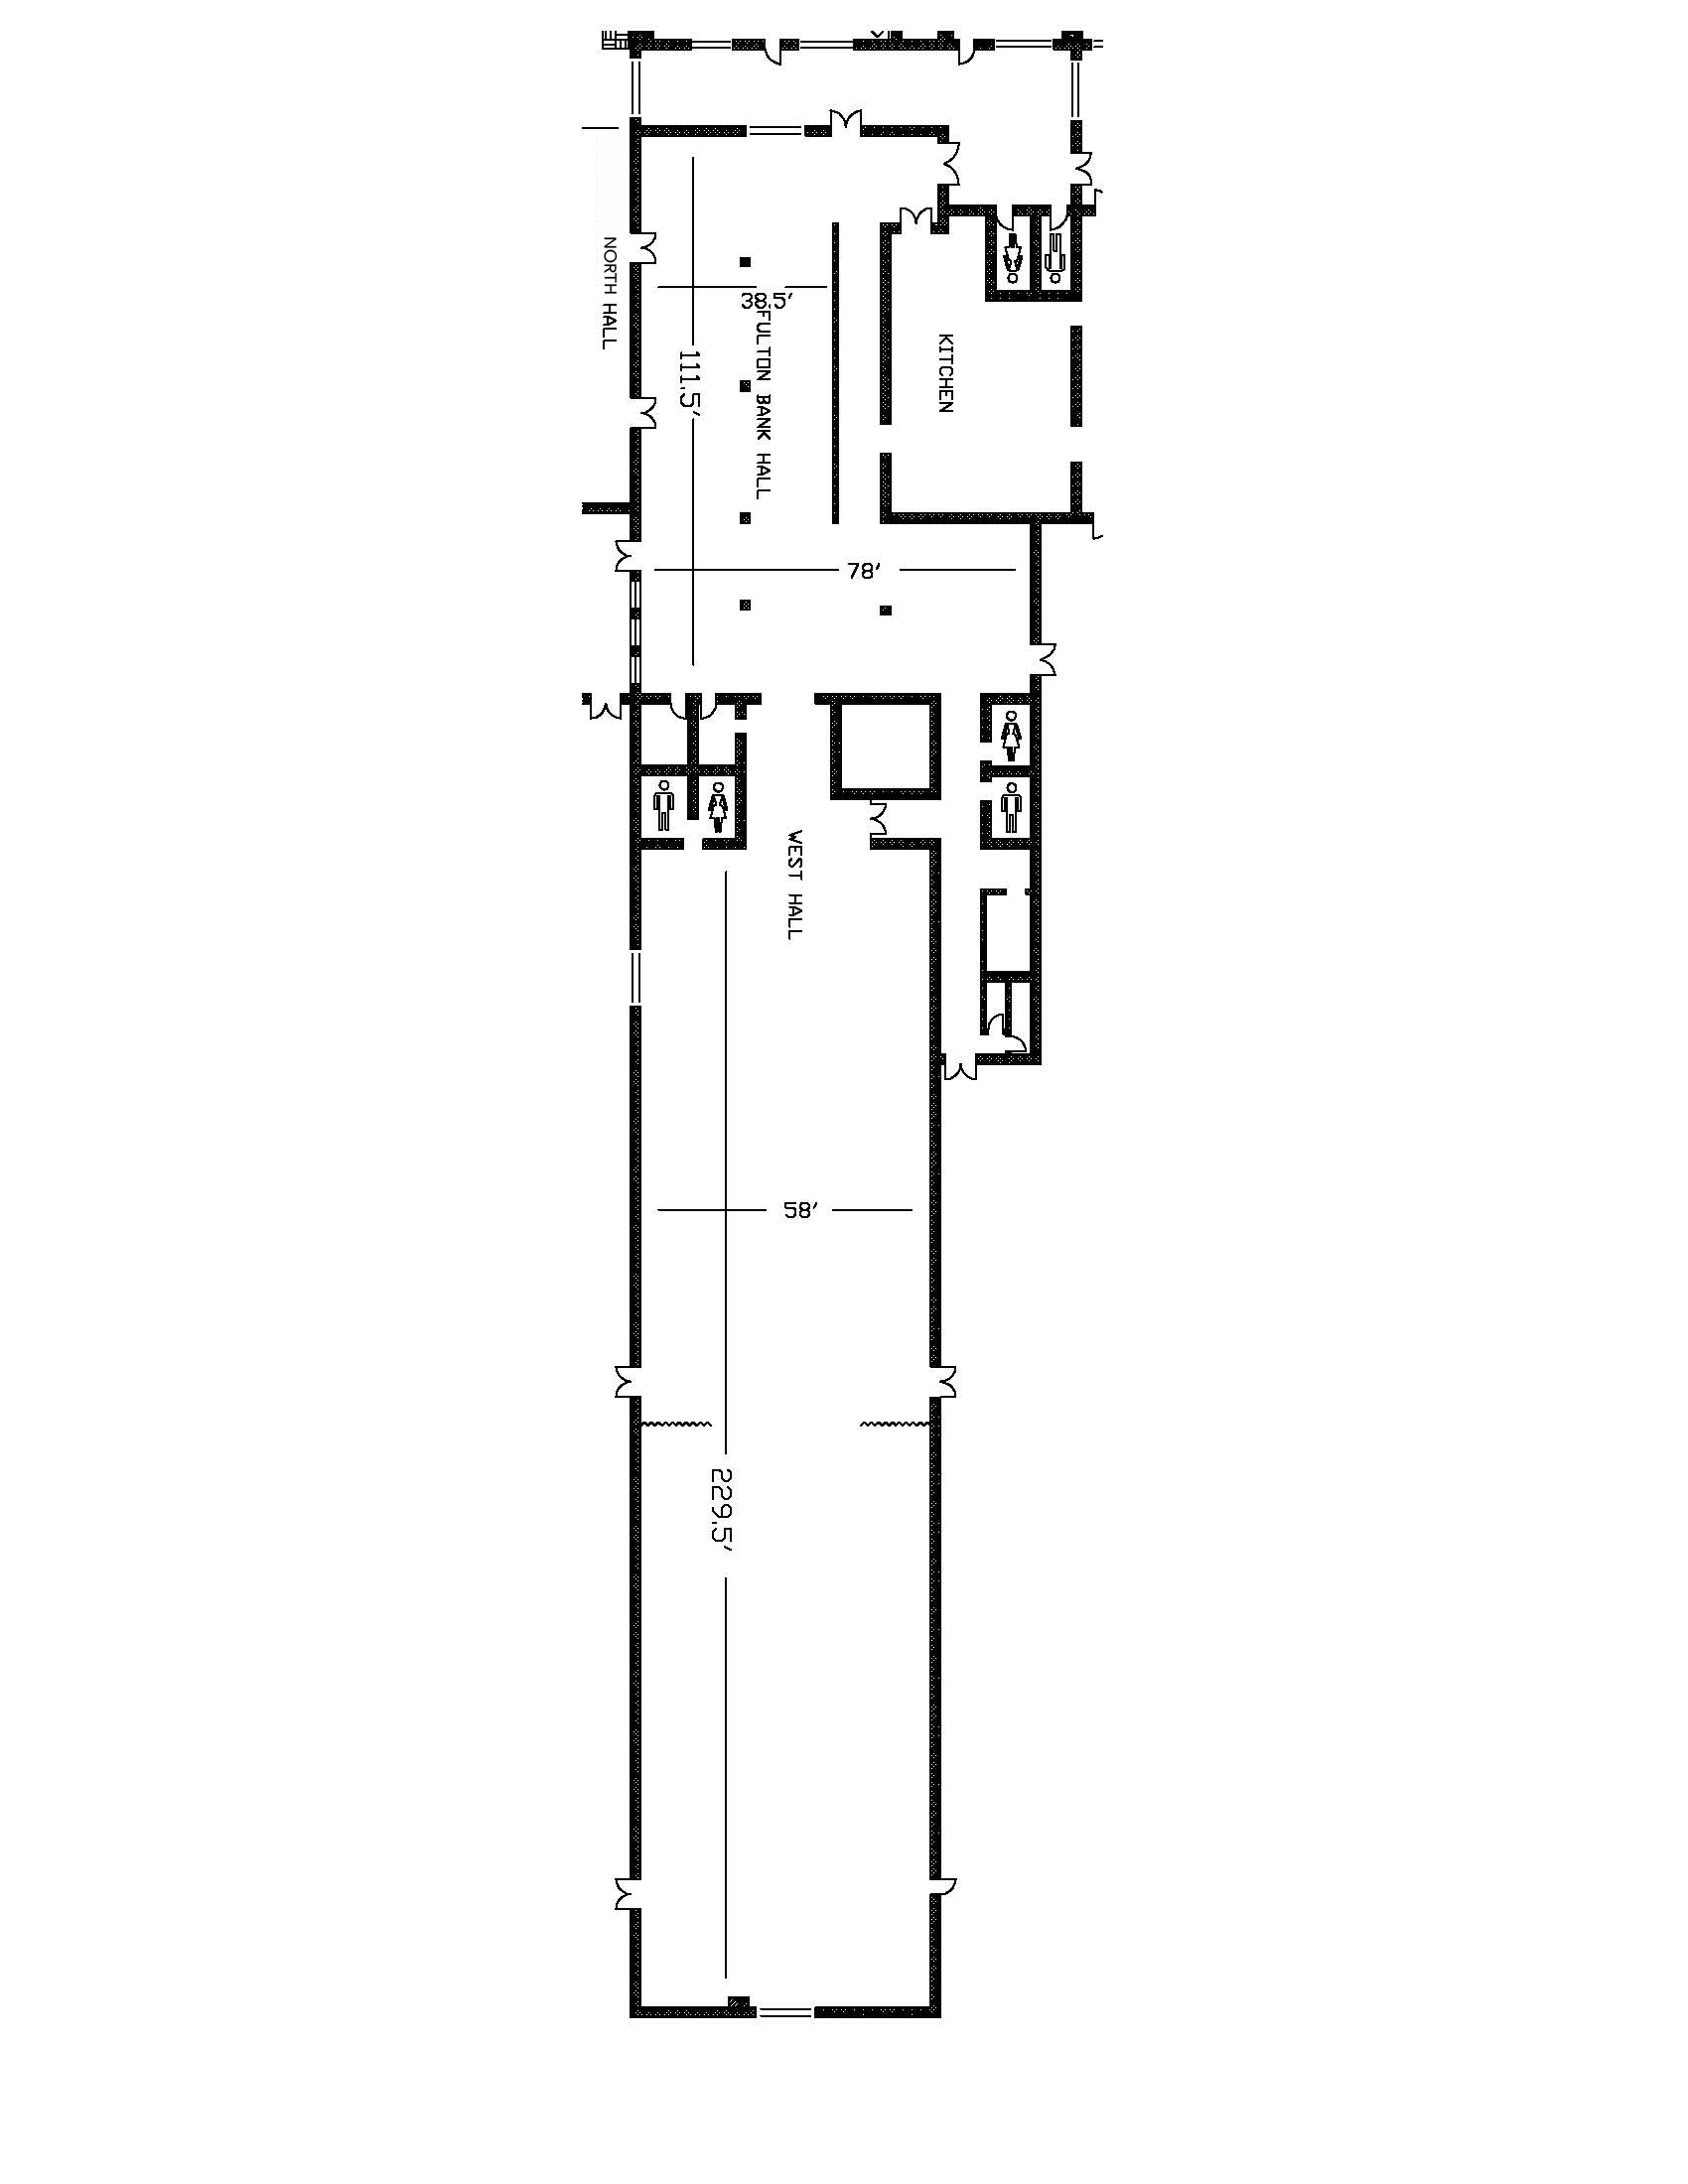 West and Center Hall - Floor Plan